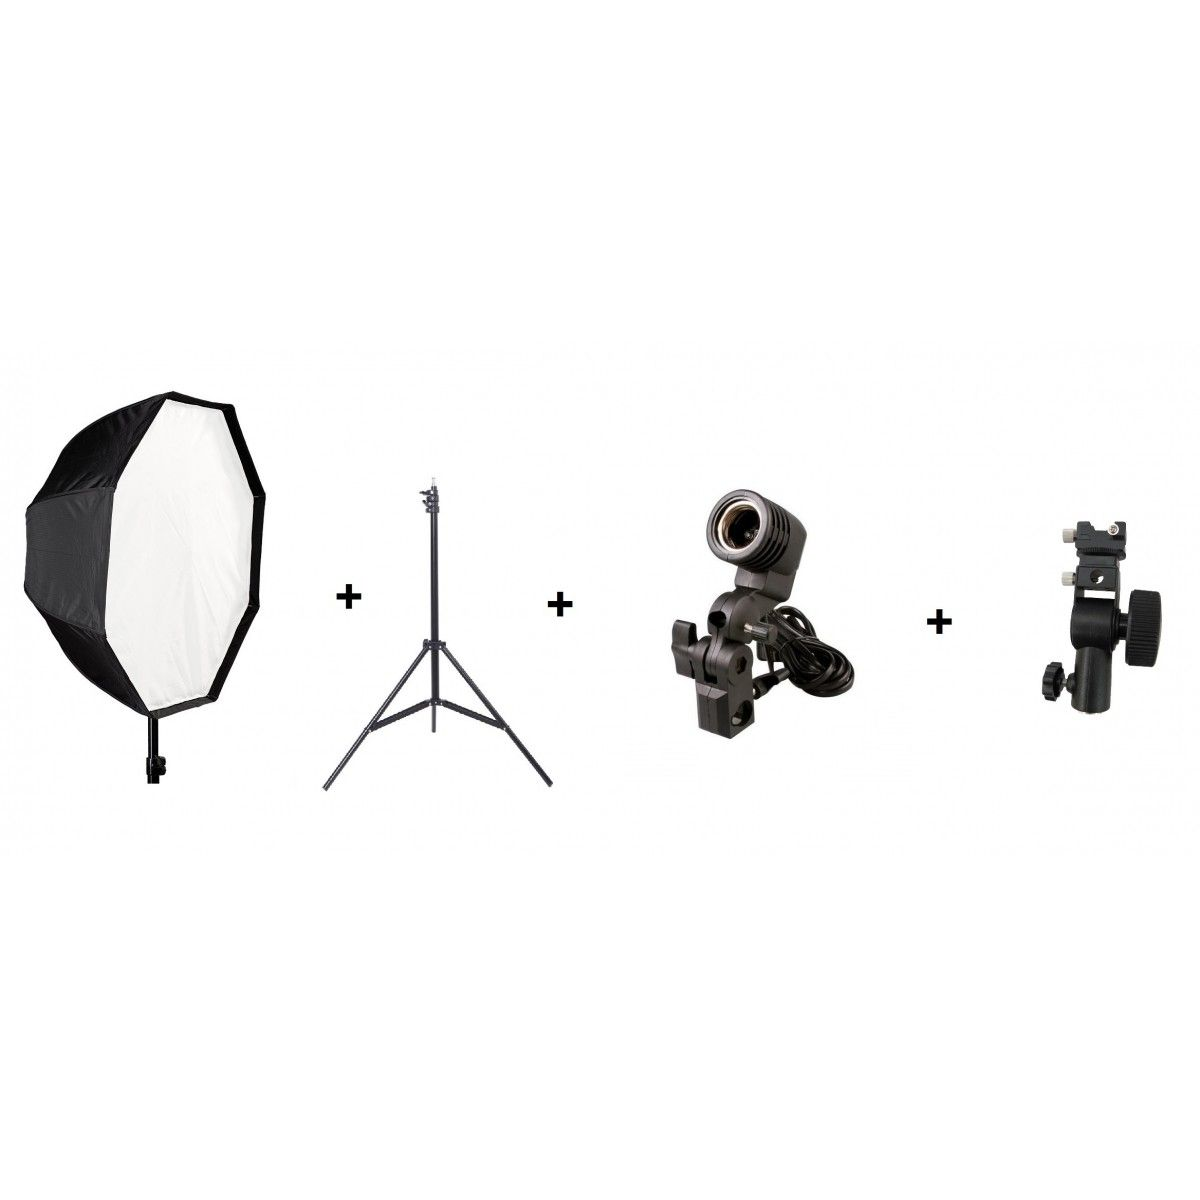 Kit 4 Em 1 Softbox 120cm, Soquete Simples E27, Adaptador Para SpeedLight E Tripé 2 Metros - 120cm + soquete simples + adaptador seedlight + st803